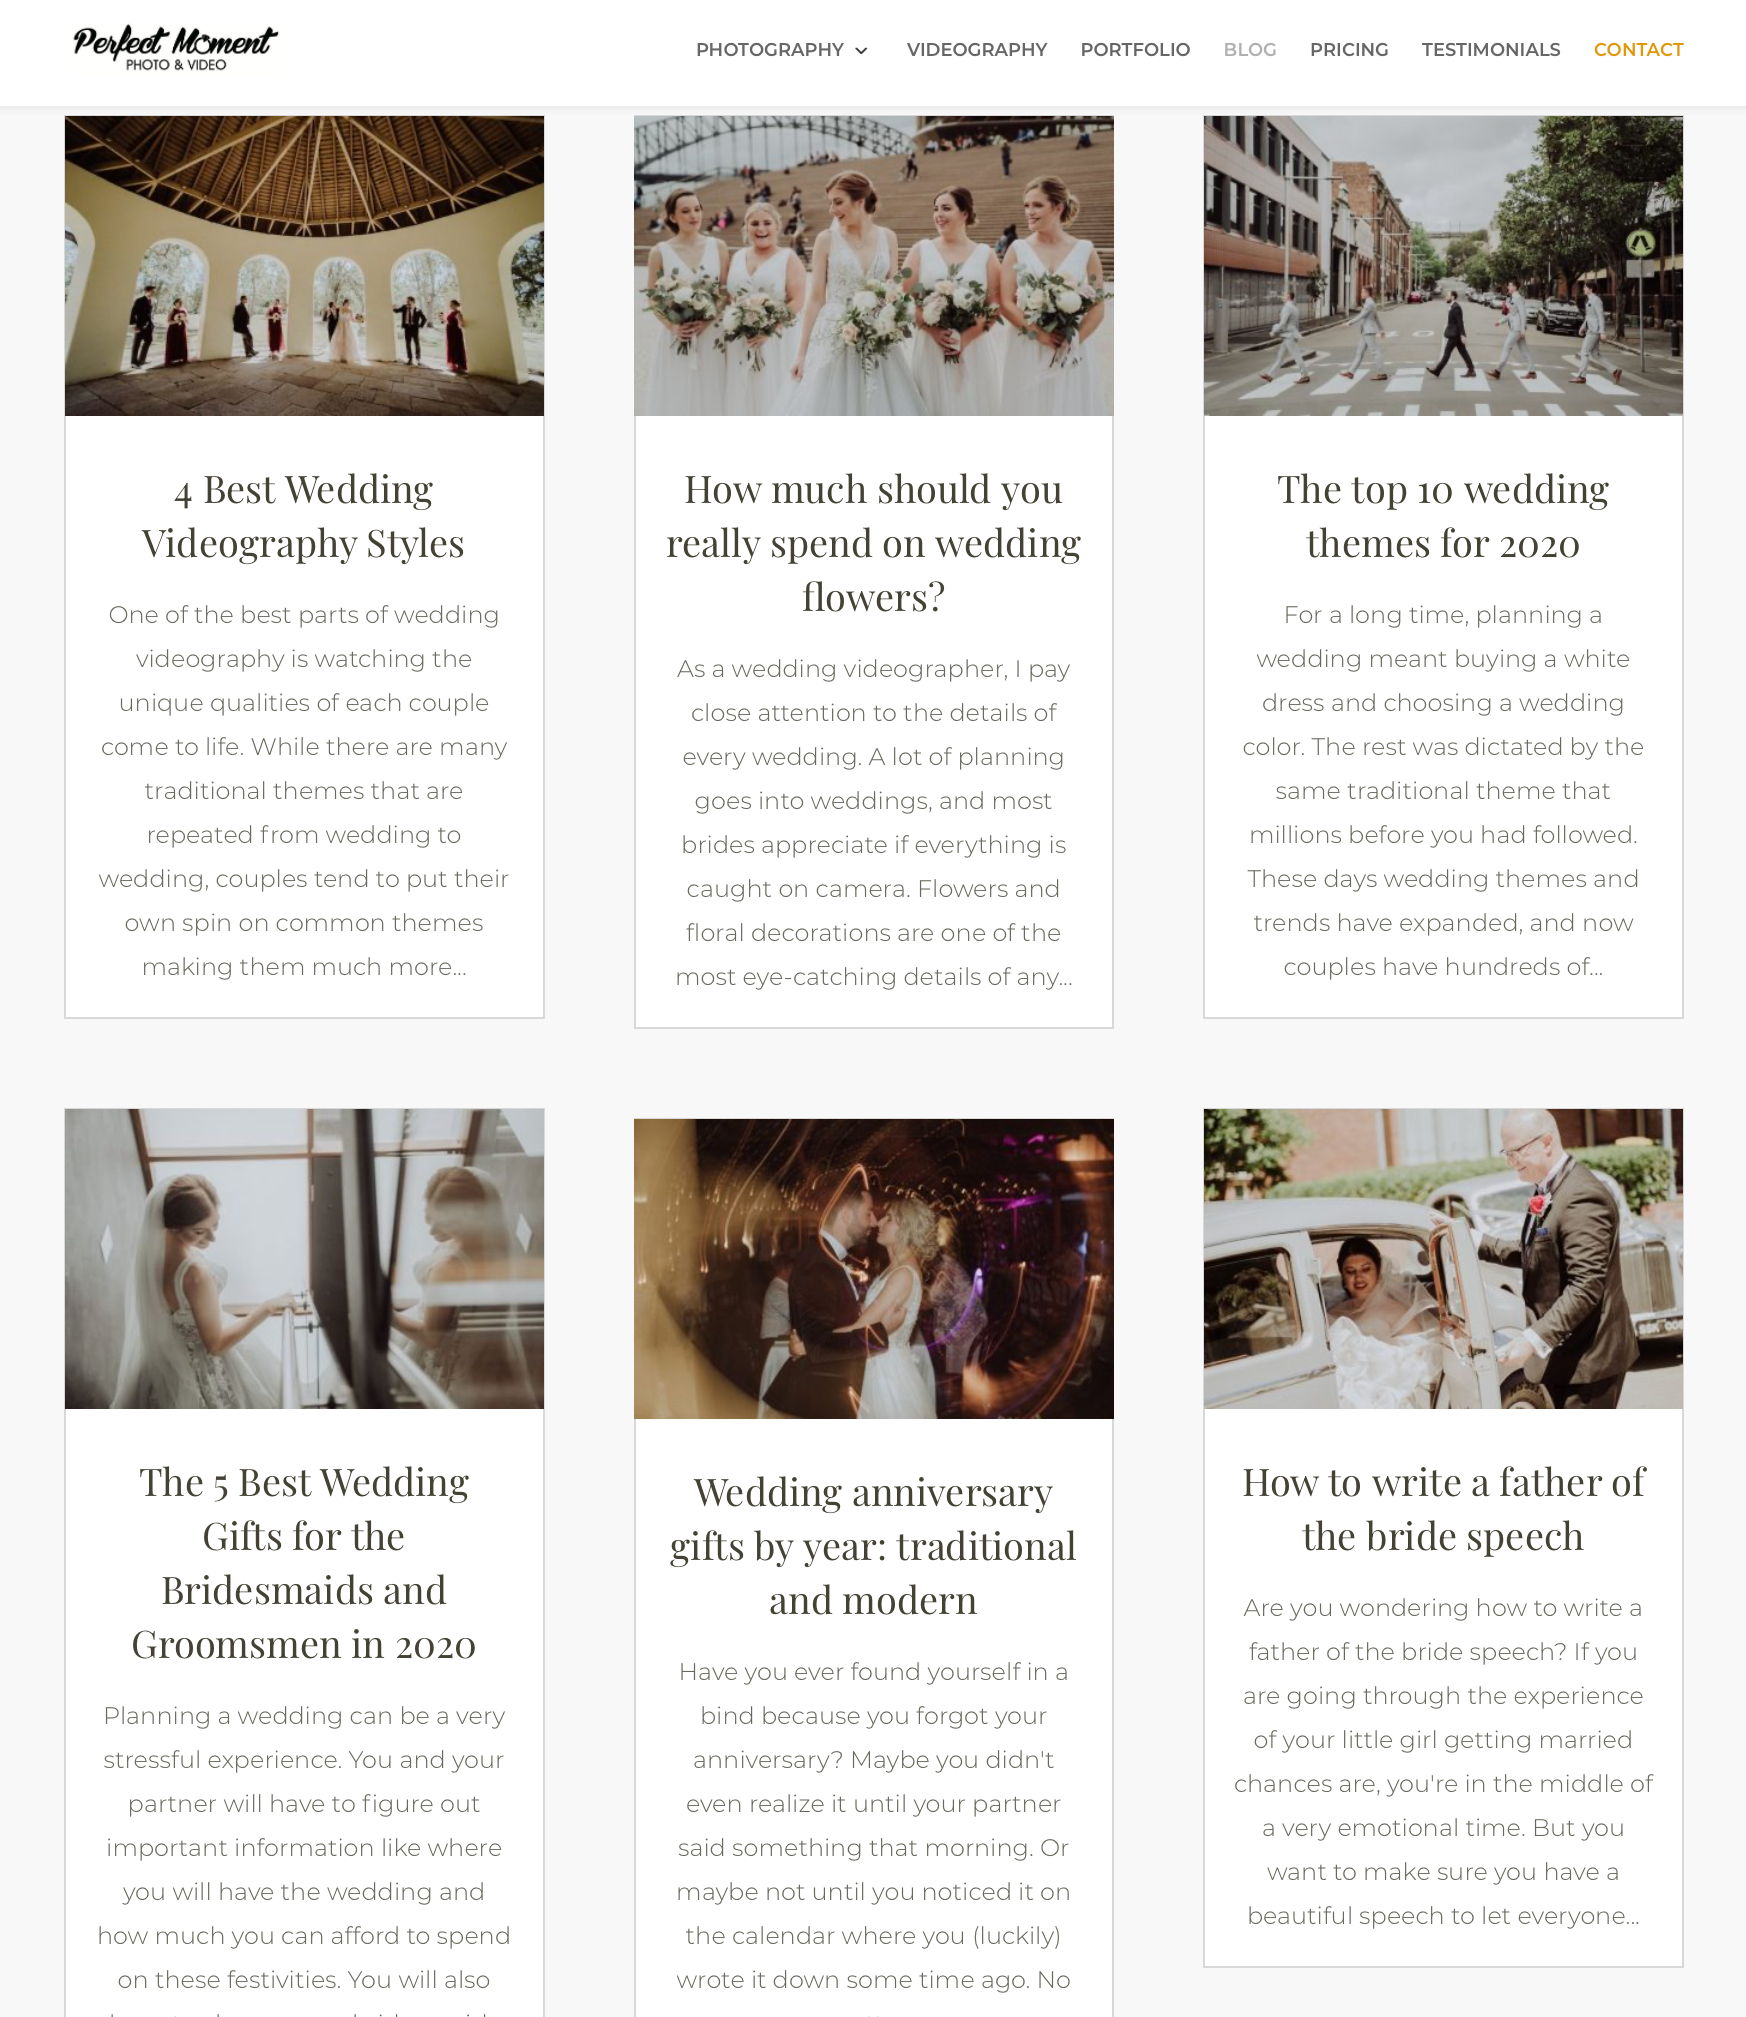 Lots of local businesses neglect their blog because of a lack of ideas, difficulty managing it, and the cost of creating new content. But the blog can be turned into a traffic gate to heaven if done right. That's what we did for our client.